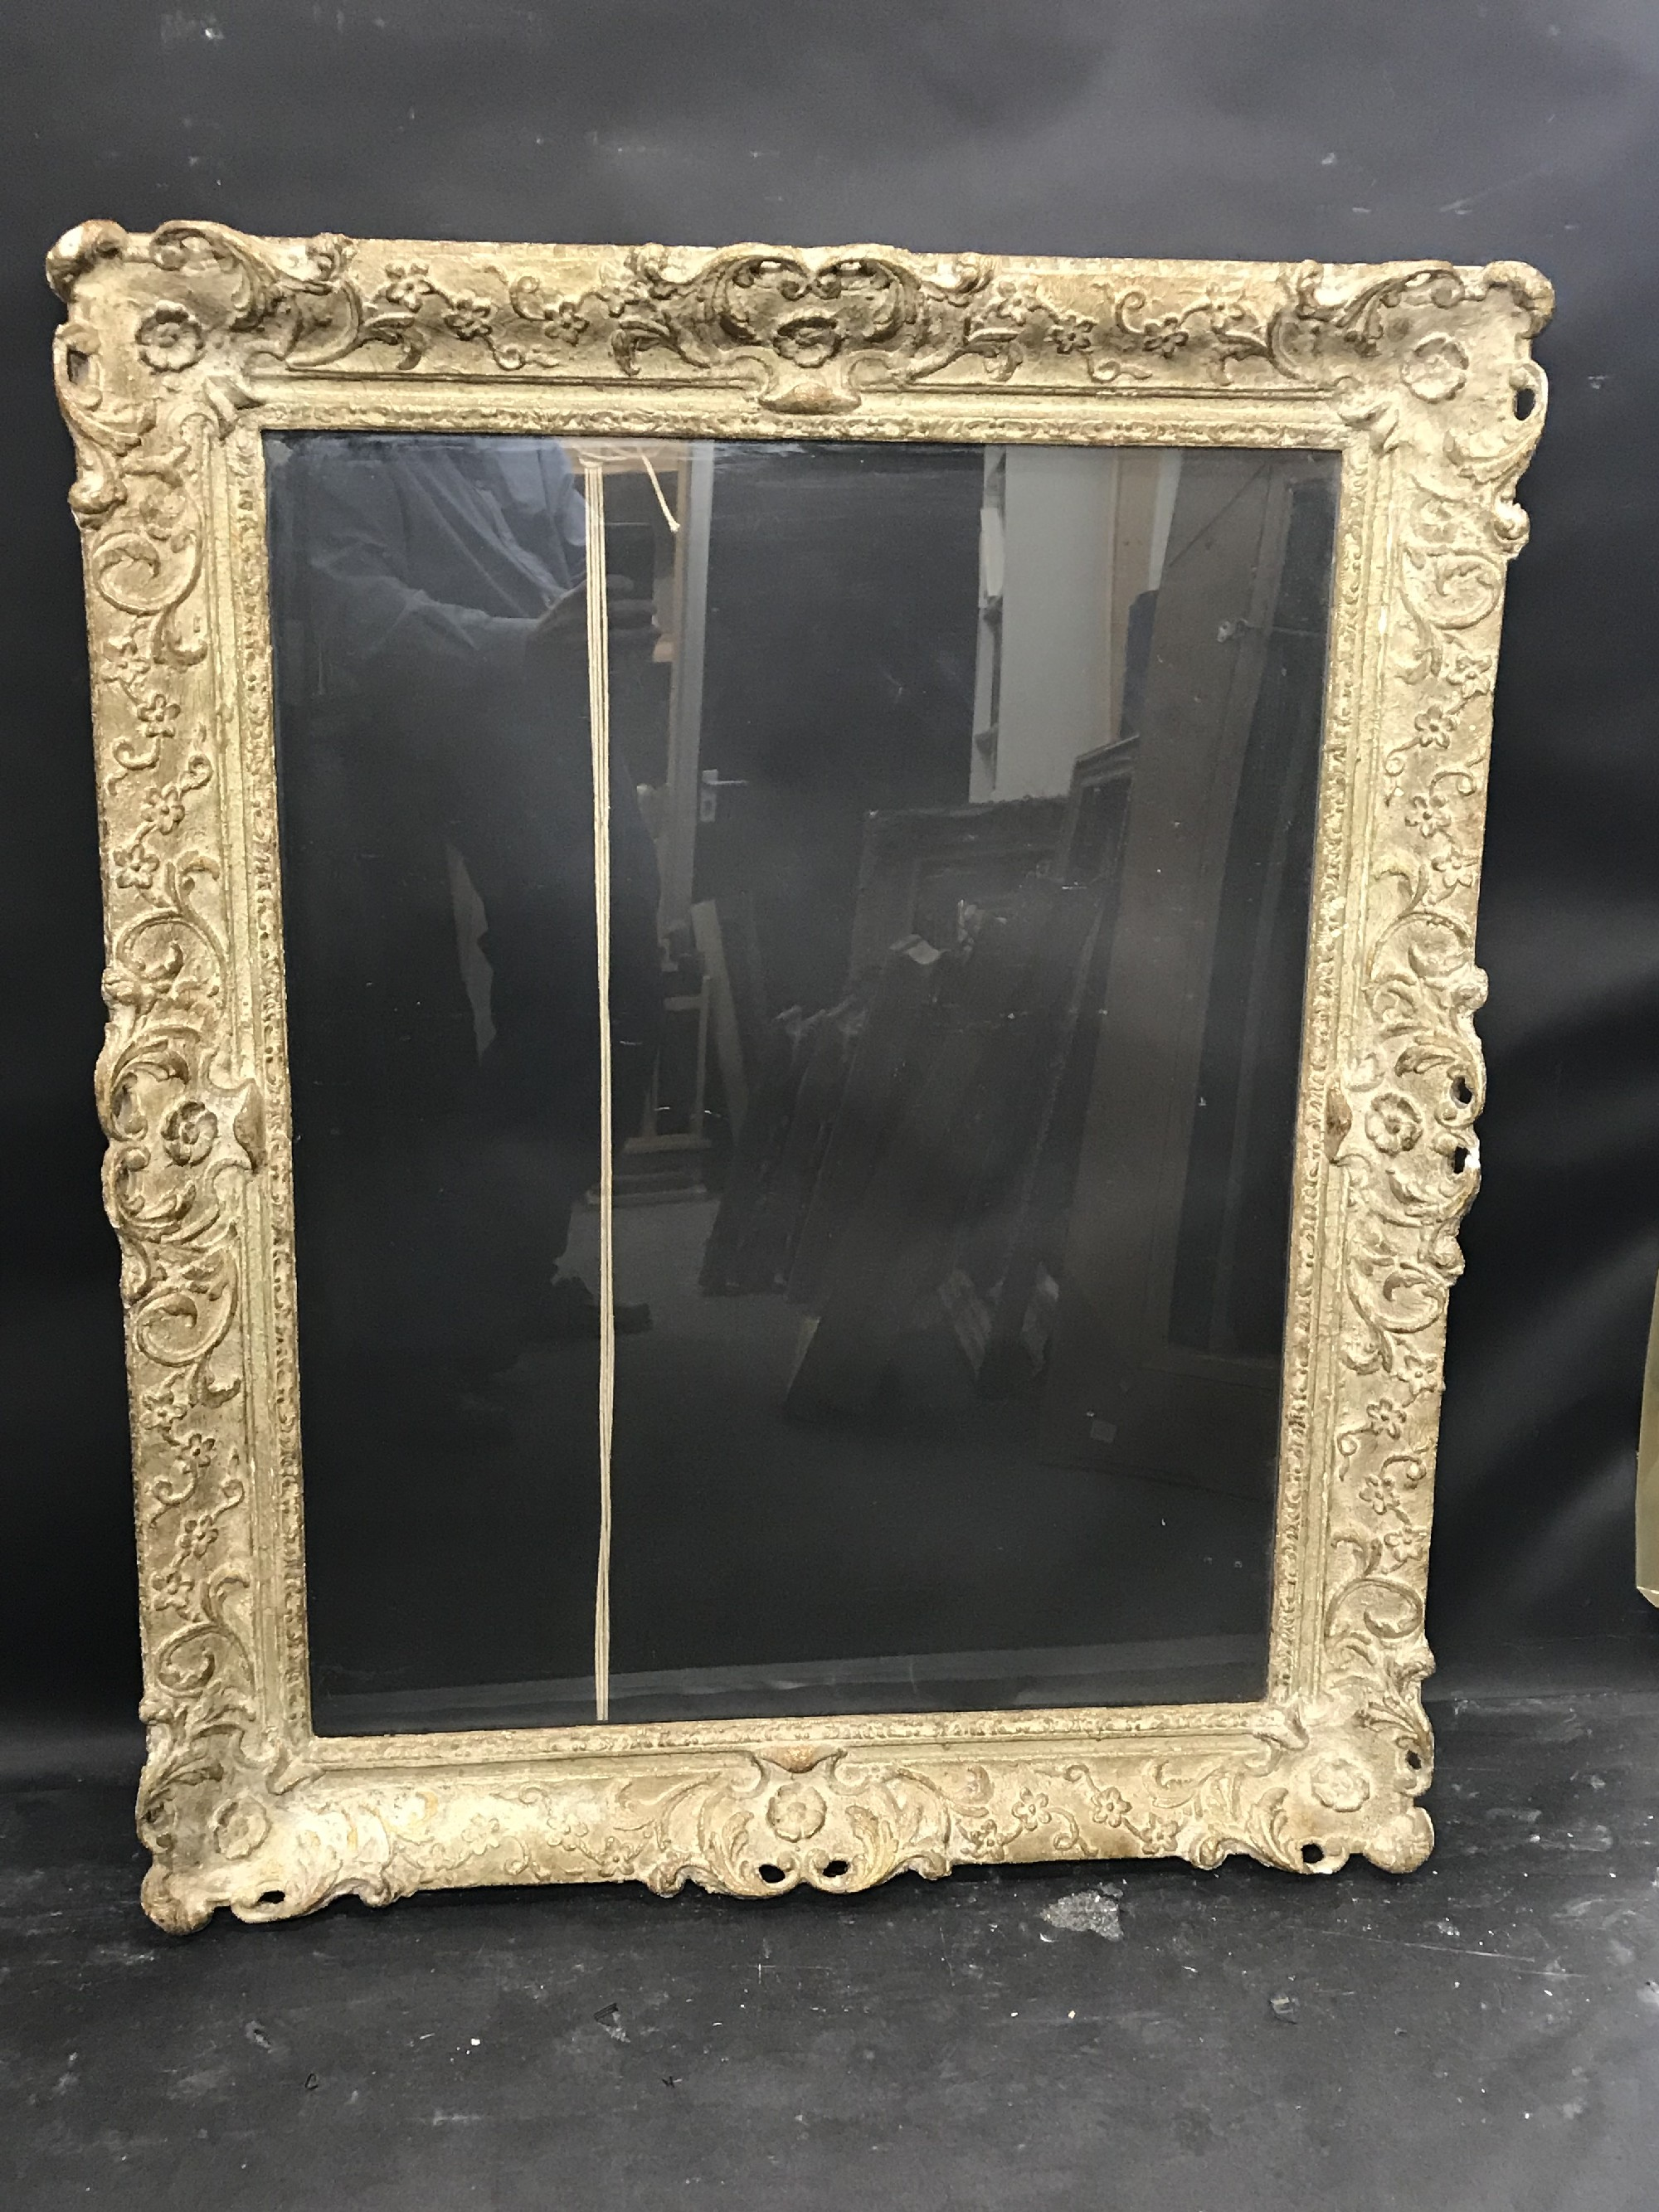 Lot 4 - 20th Century English School. A Painted Composition Frame, with Swept, Pierced Centres and Corners,